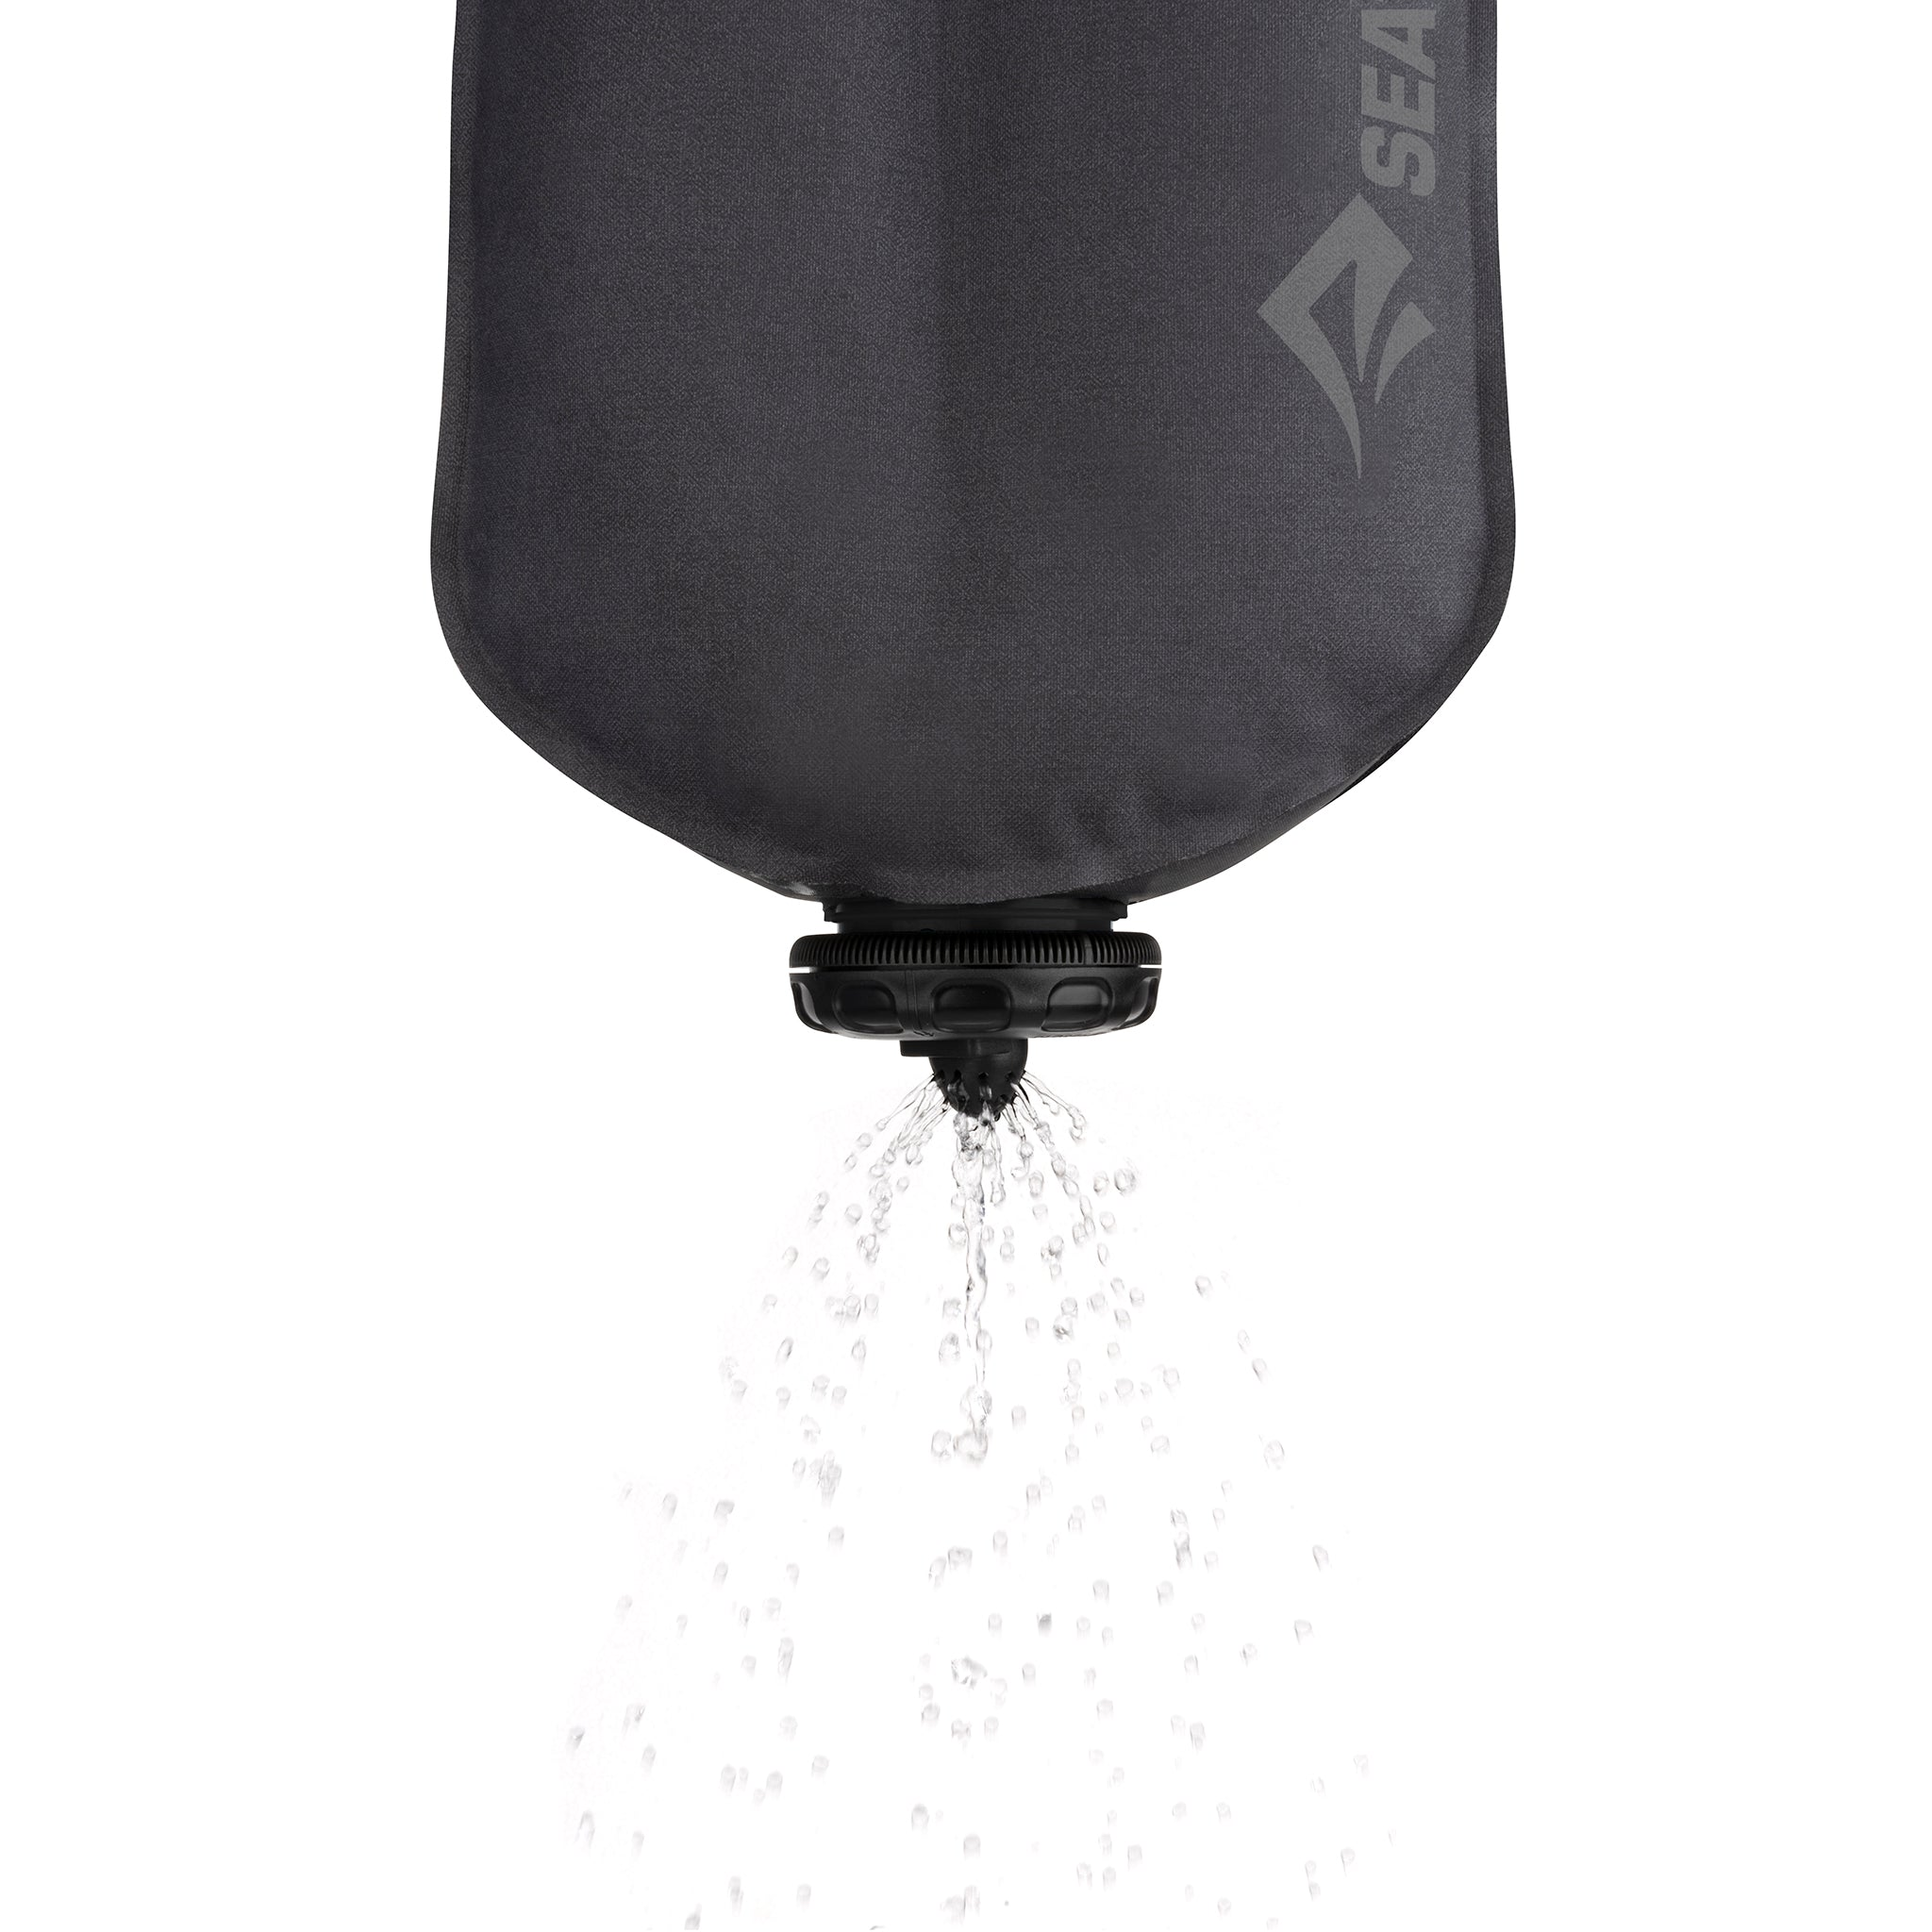 Warter cell X _ durable reservoir water bag _ pour nozzle